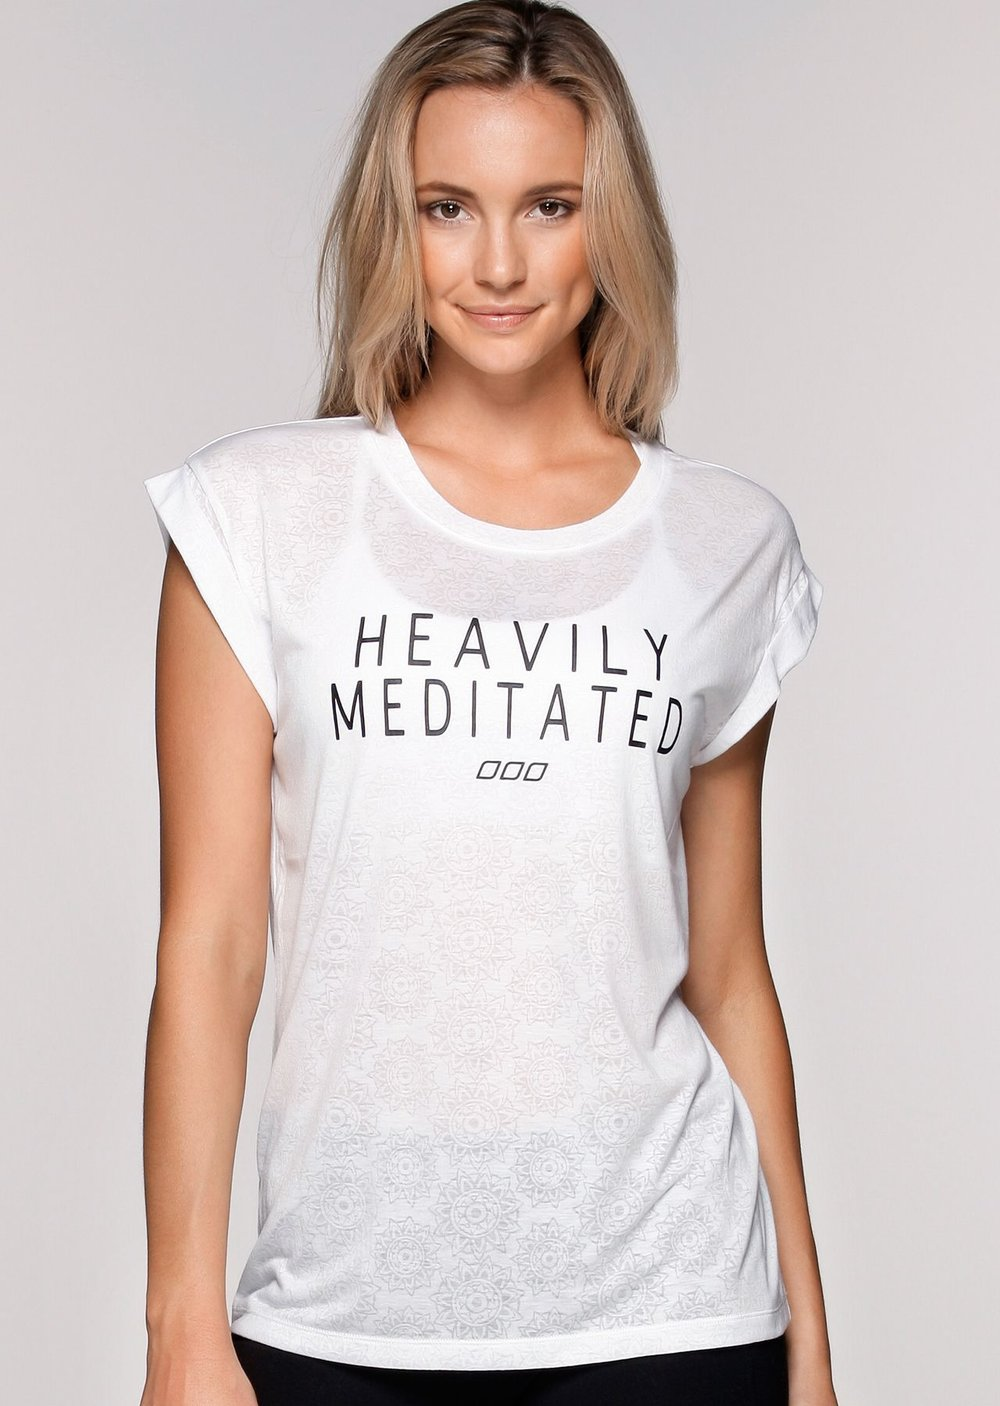 Heavily Meditated Top by Lorna Jane £48.00